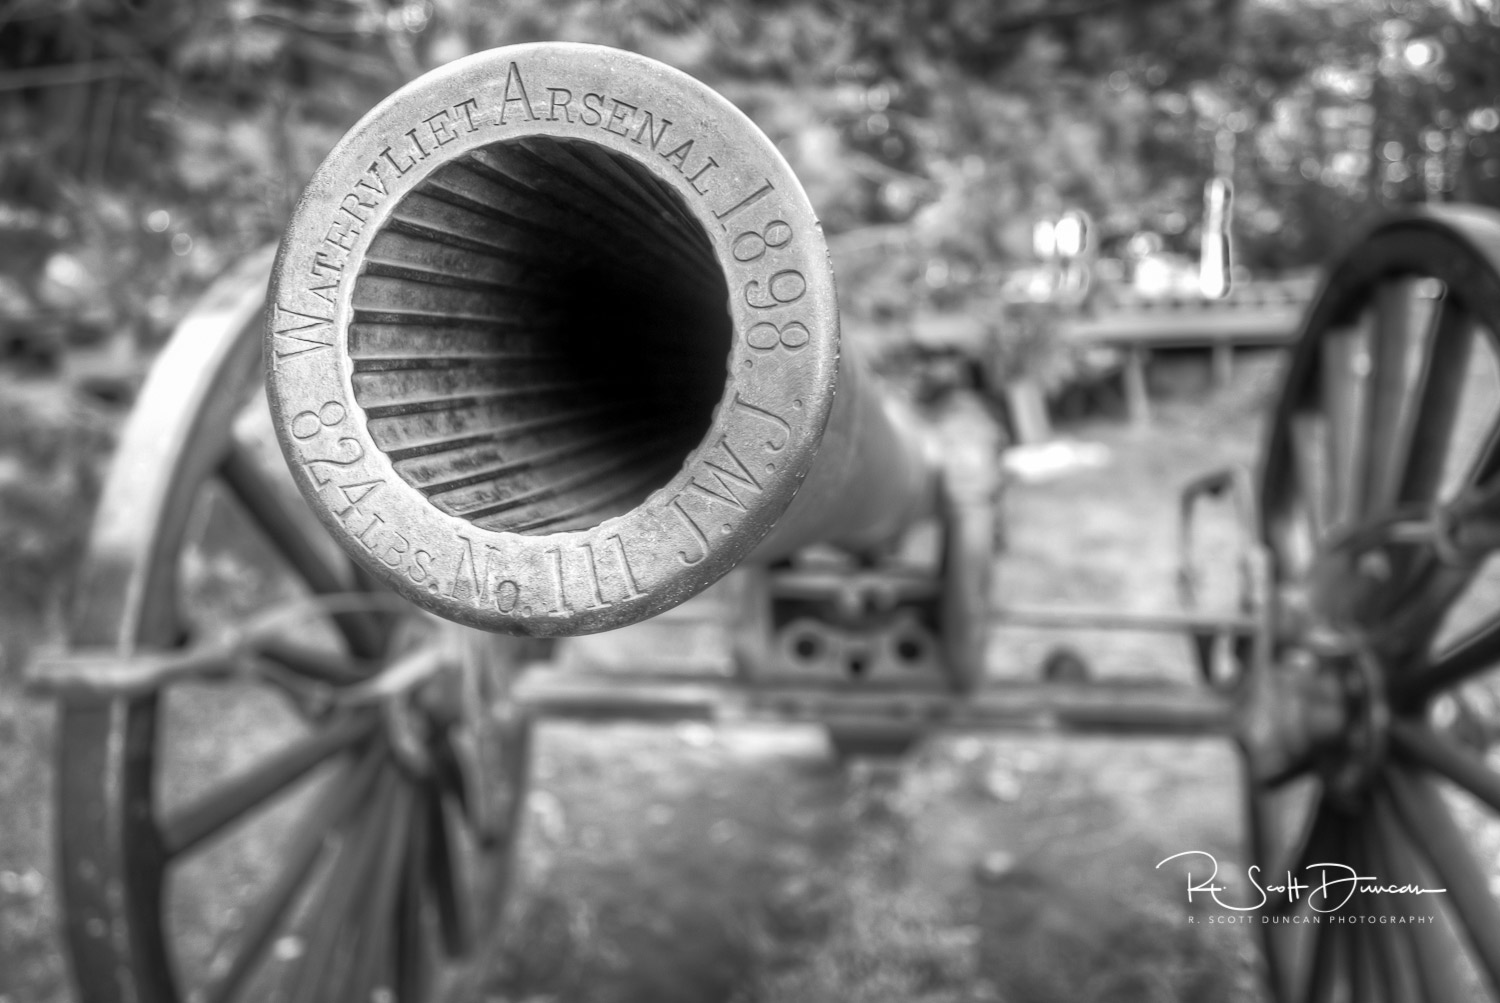 watervliet-arsonal-1898-cannon